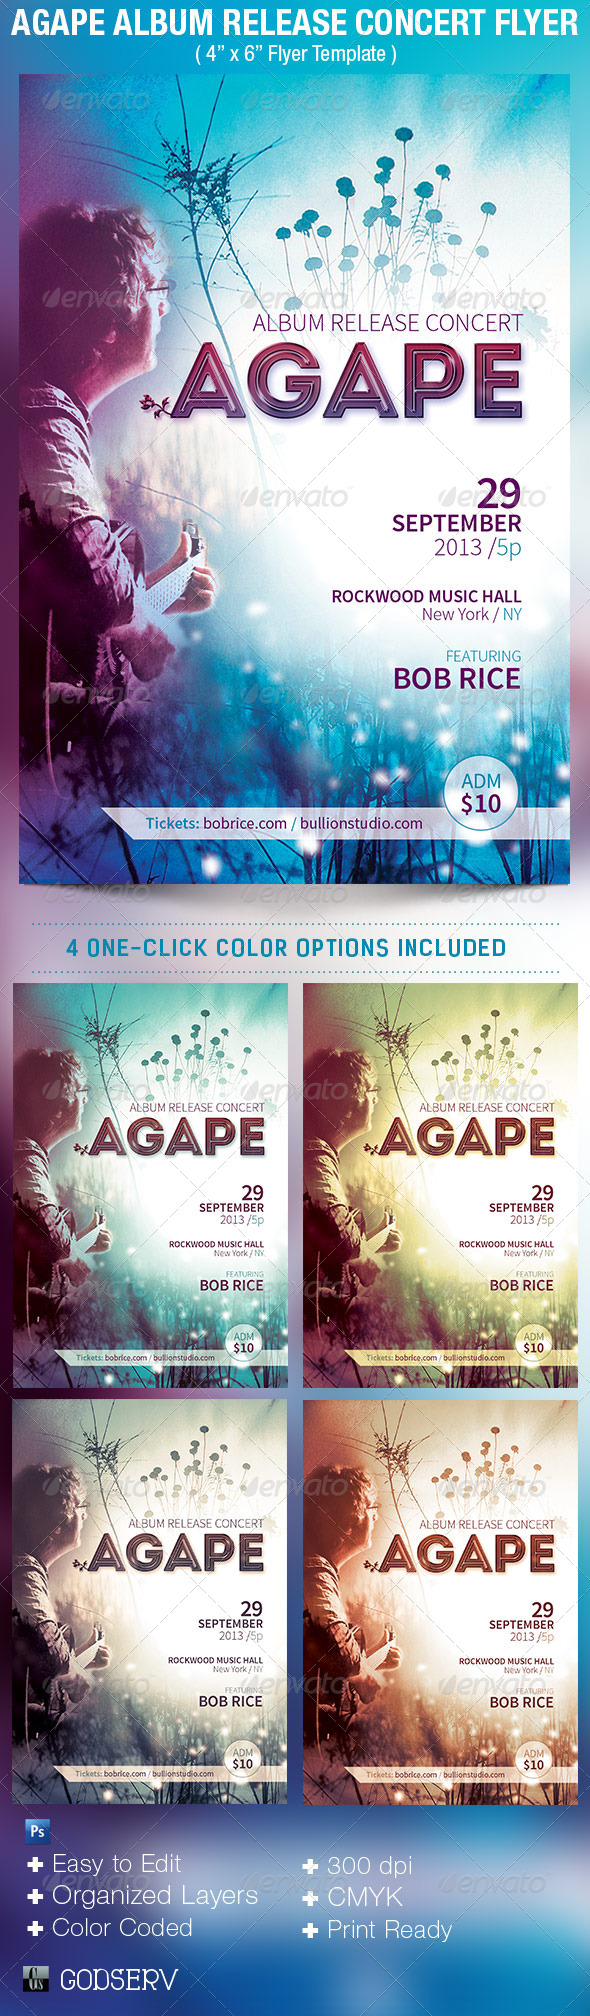 GraphicRiver Agape Album Release Concert Flyer Template 5250527